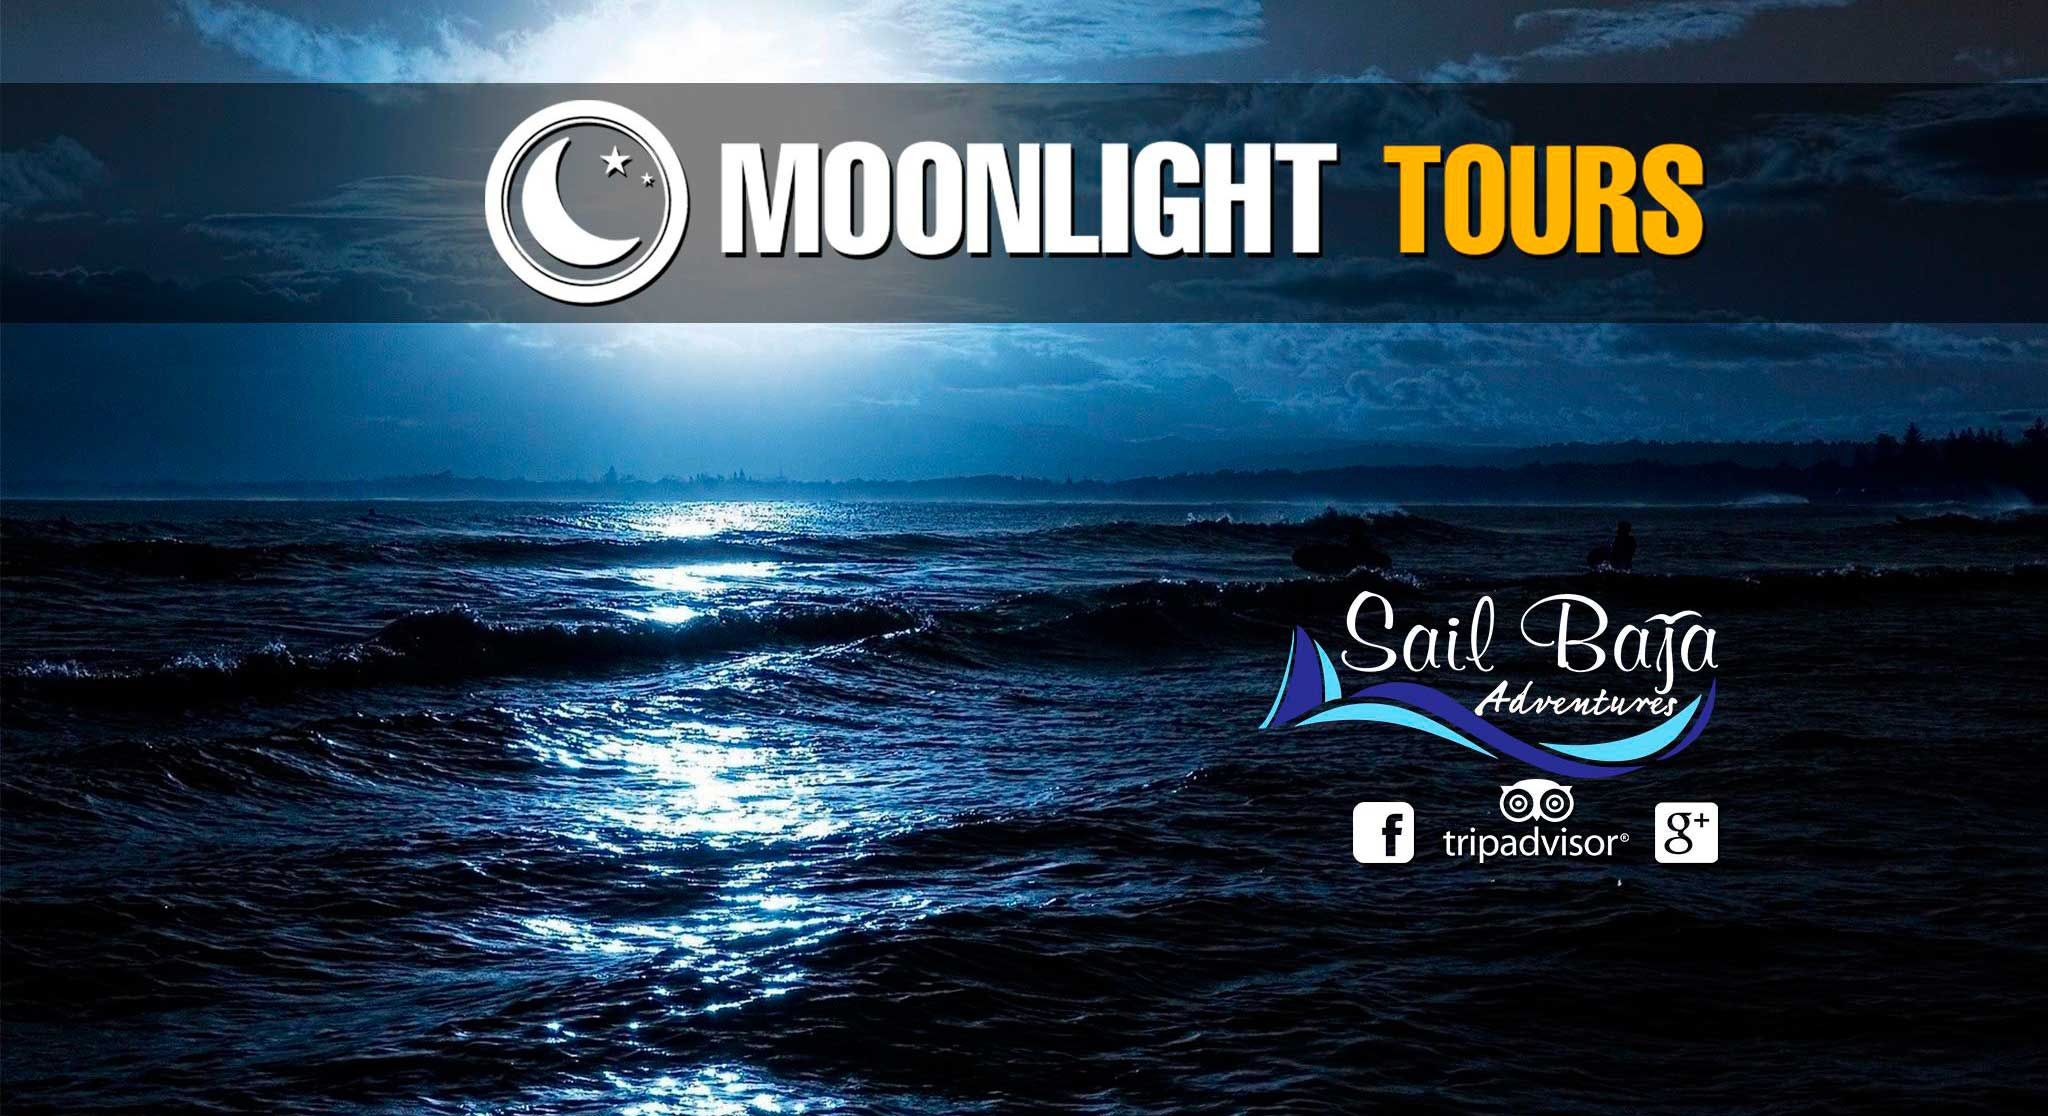 Moonlight Tours in Cabo San Lucas, Los Cabos, Mexico